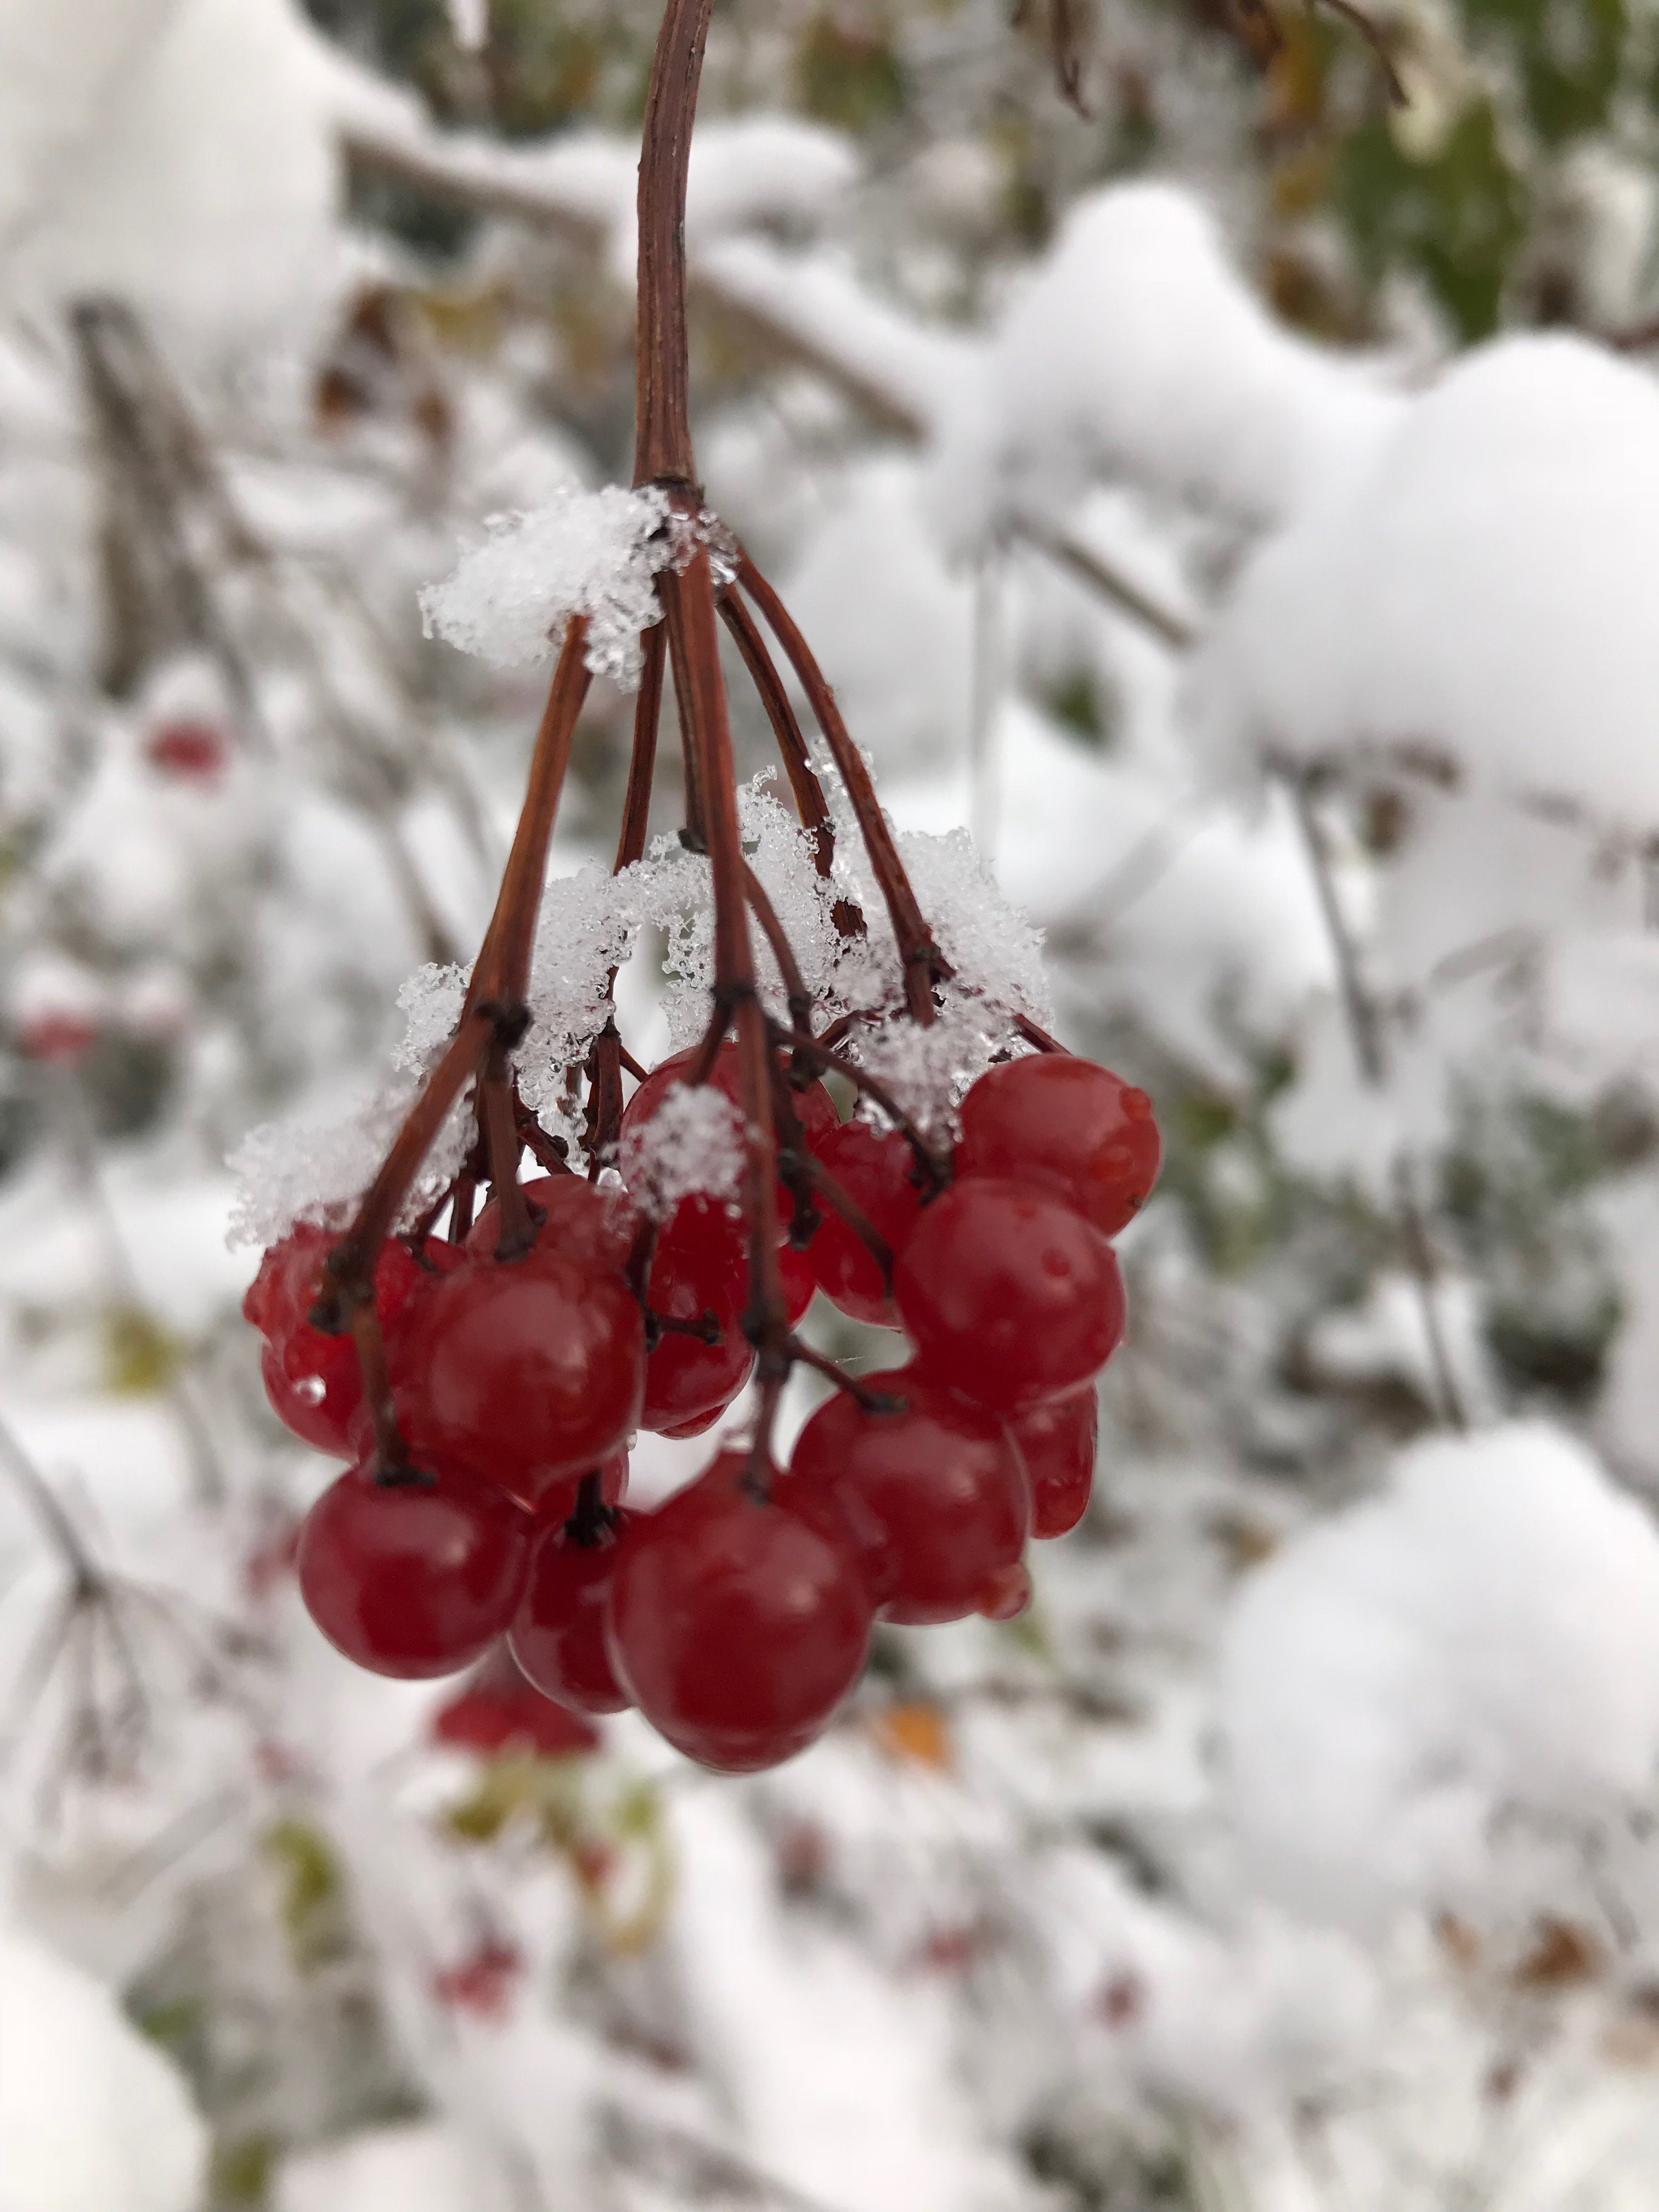 Berries covered in snow and ice